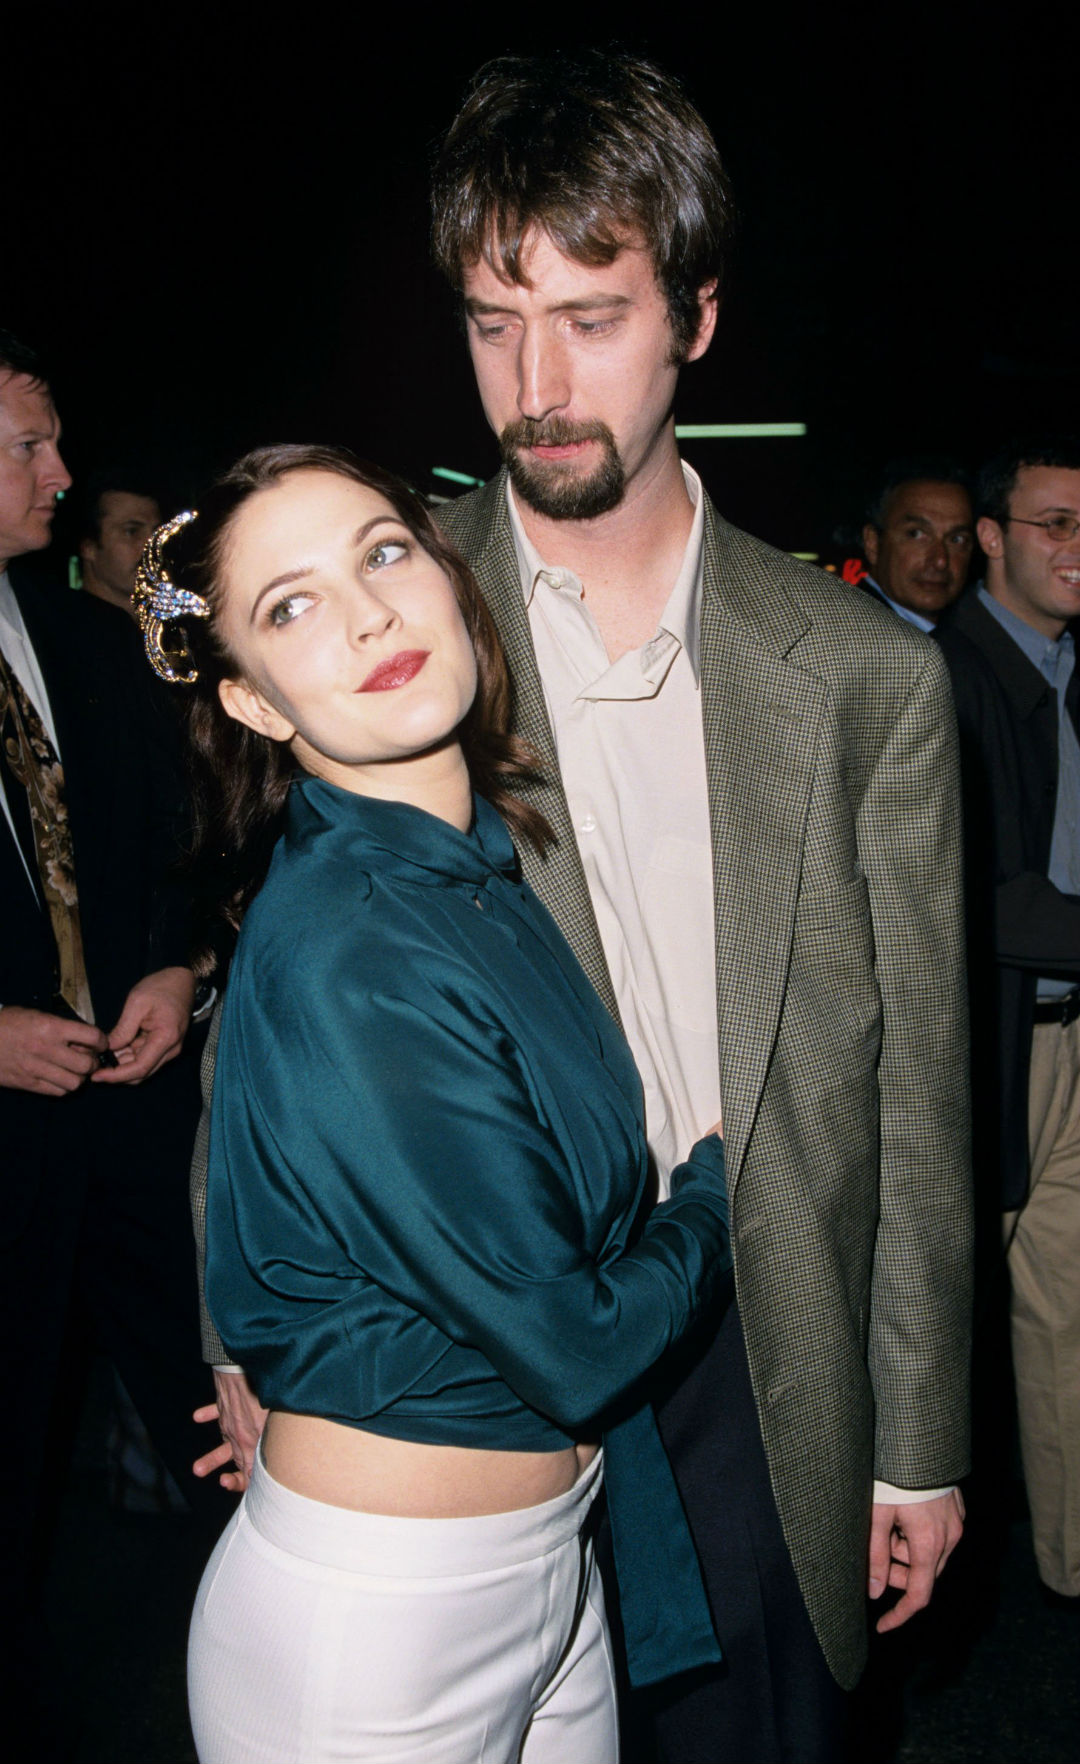 jaw-droppingly-short-celebrity-marriages-01